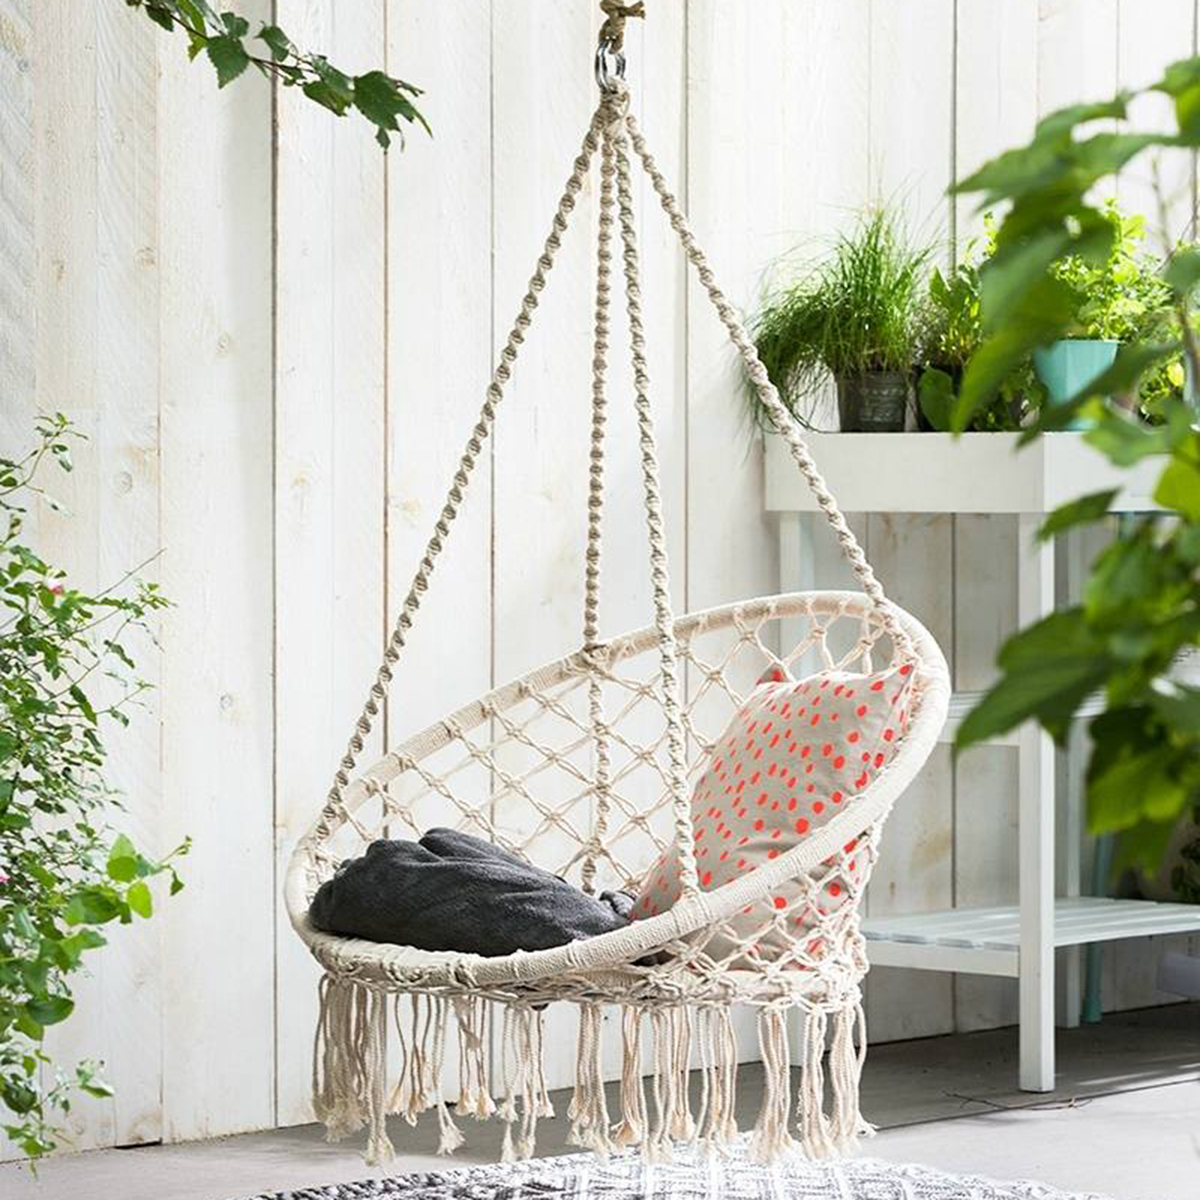 47 2 Indoor Hanging Chair Macrame Hammock Swing Chair Cotton Rope